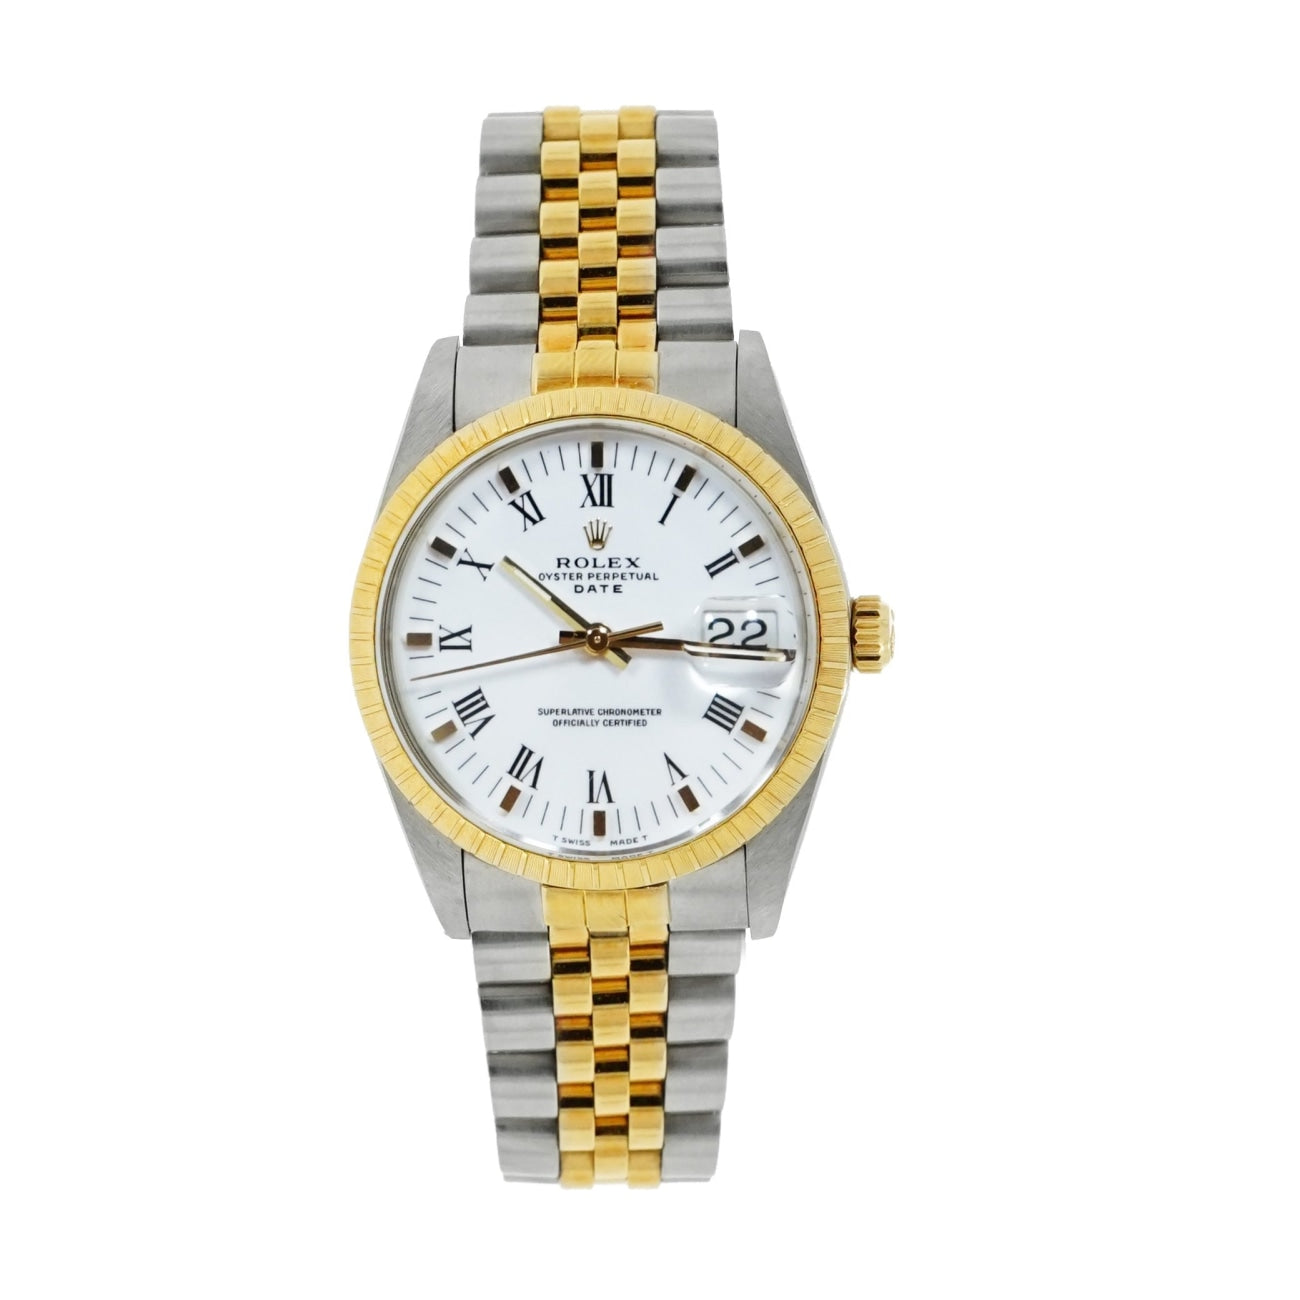 Pre-Owned Rolex Watches - Oyster Perpetual Date in Stainless Steel and Yellow Gold | Manfredi Jewels